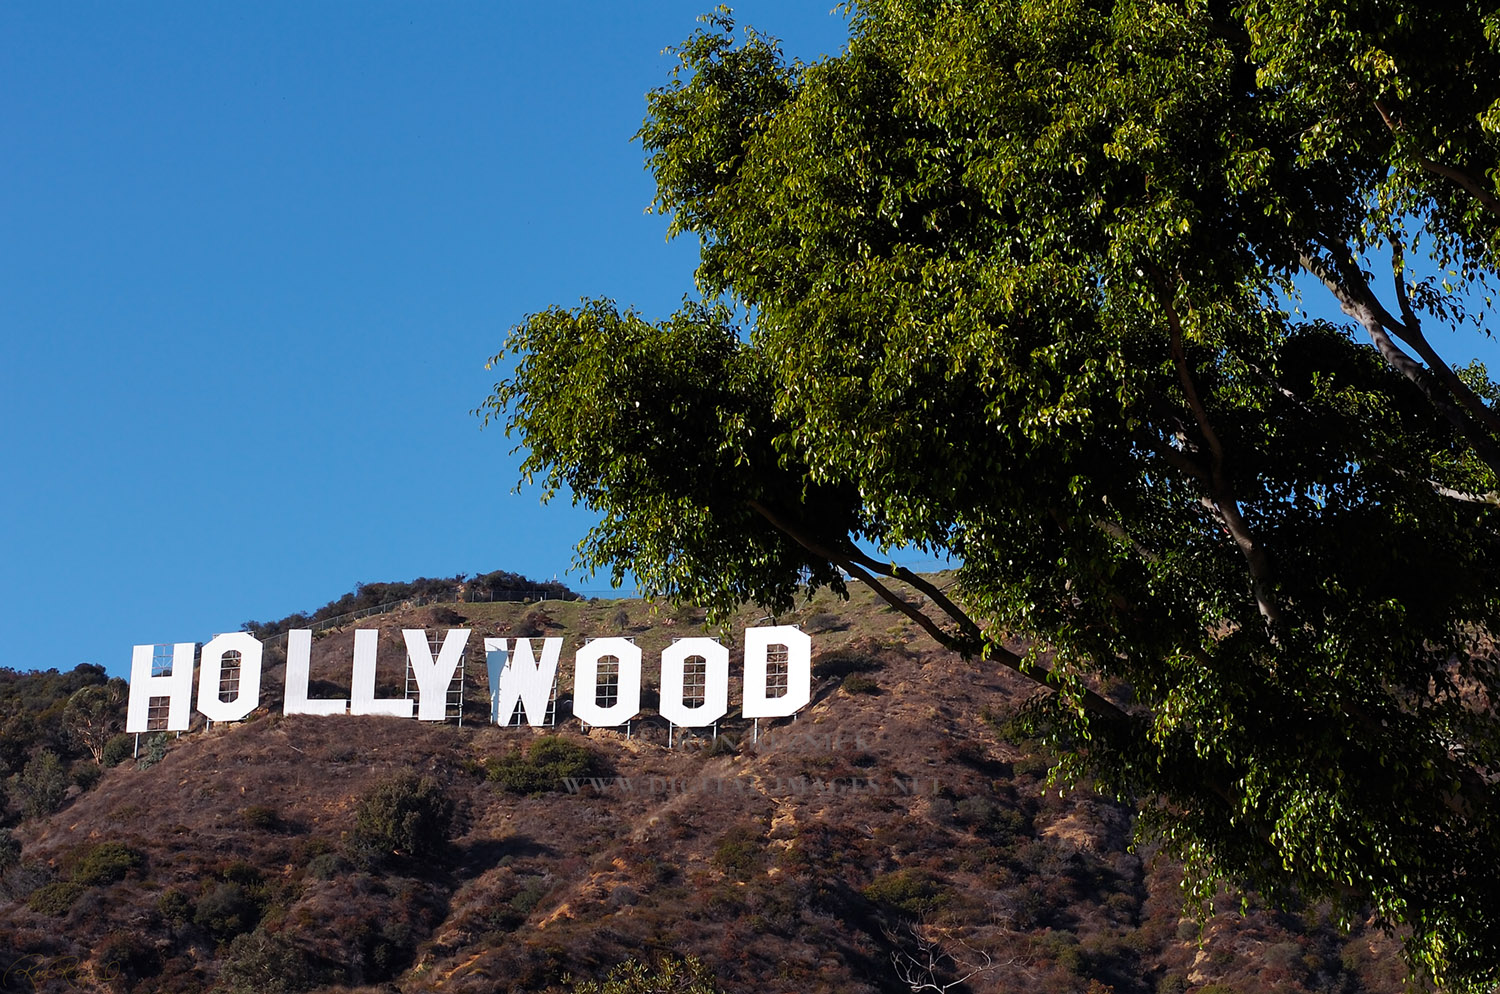 nature wallpapers background hollywood bollywood 1500x994